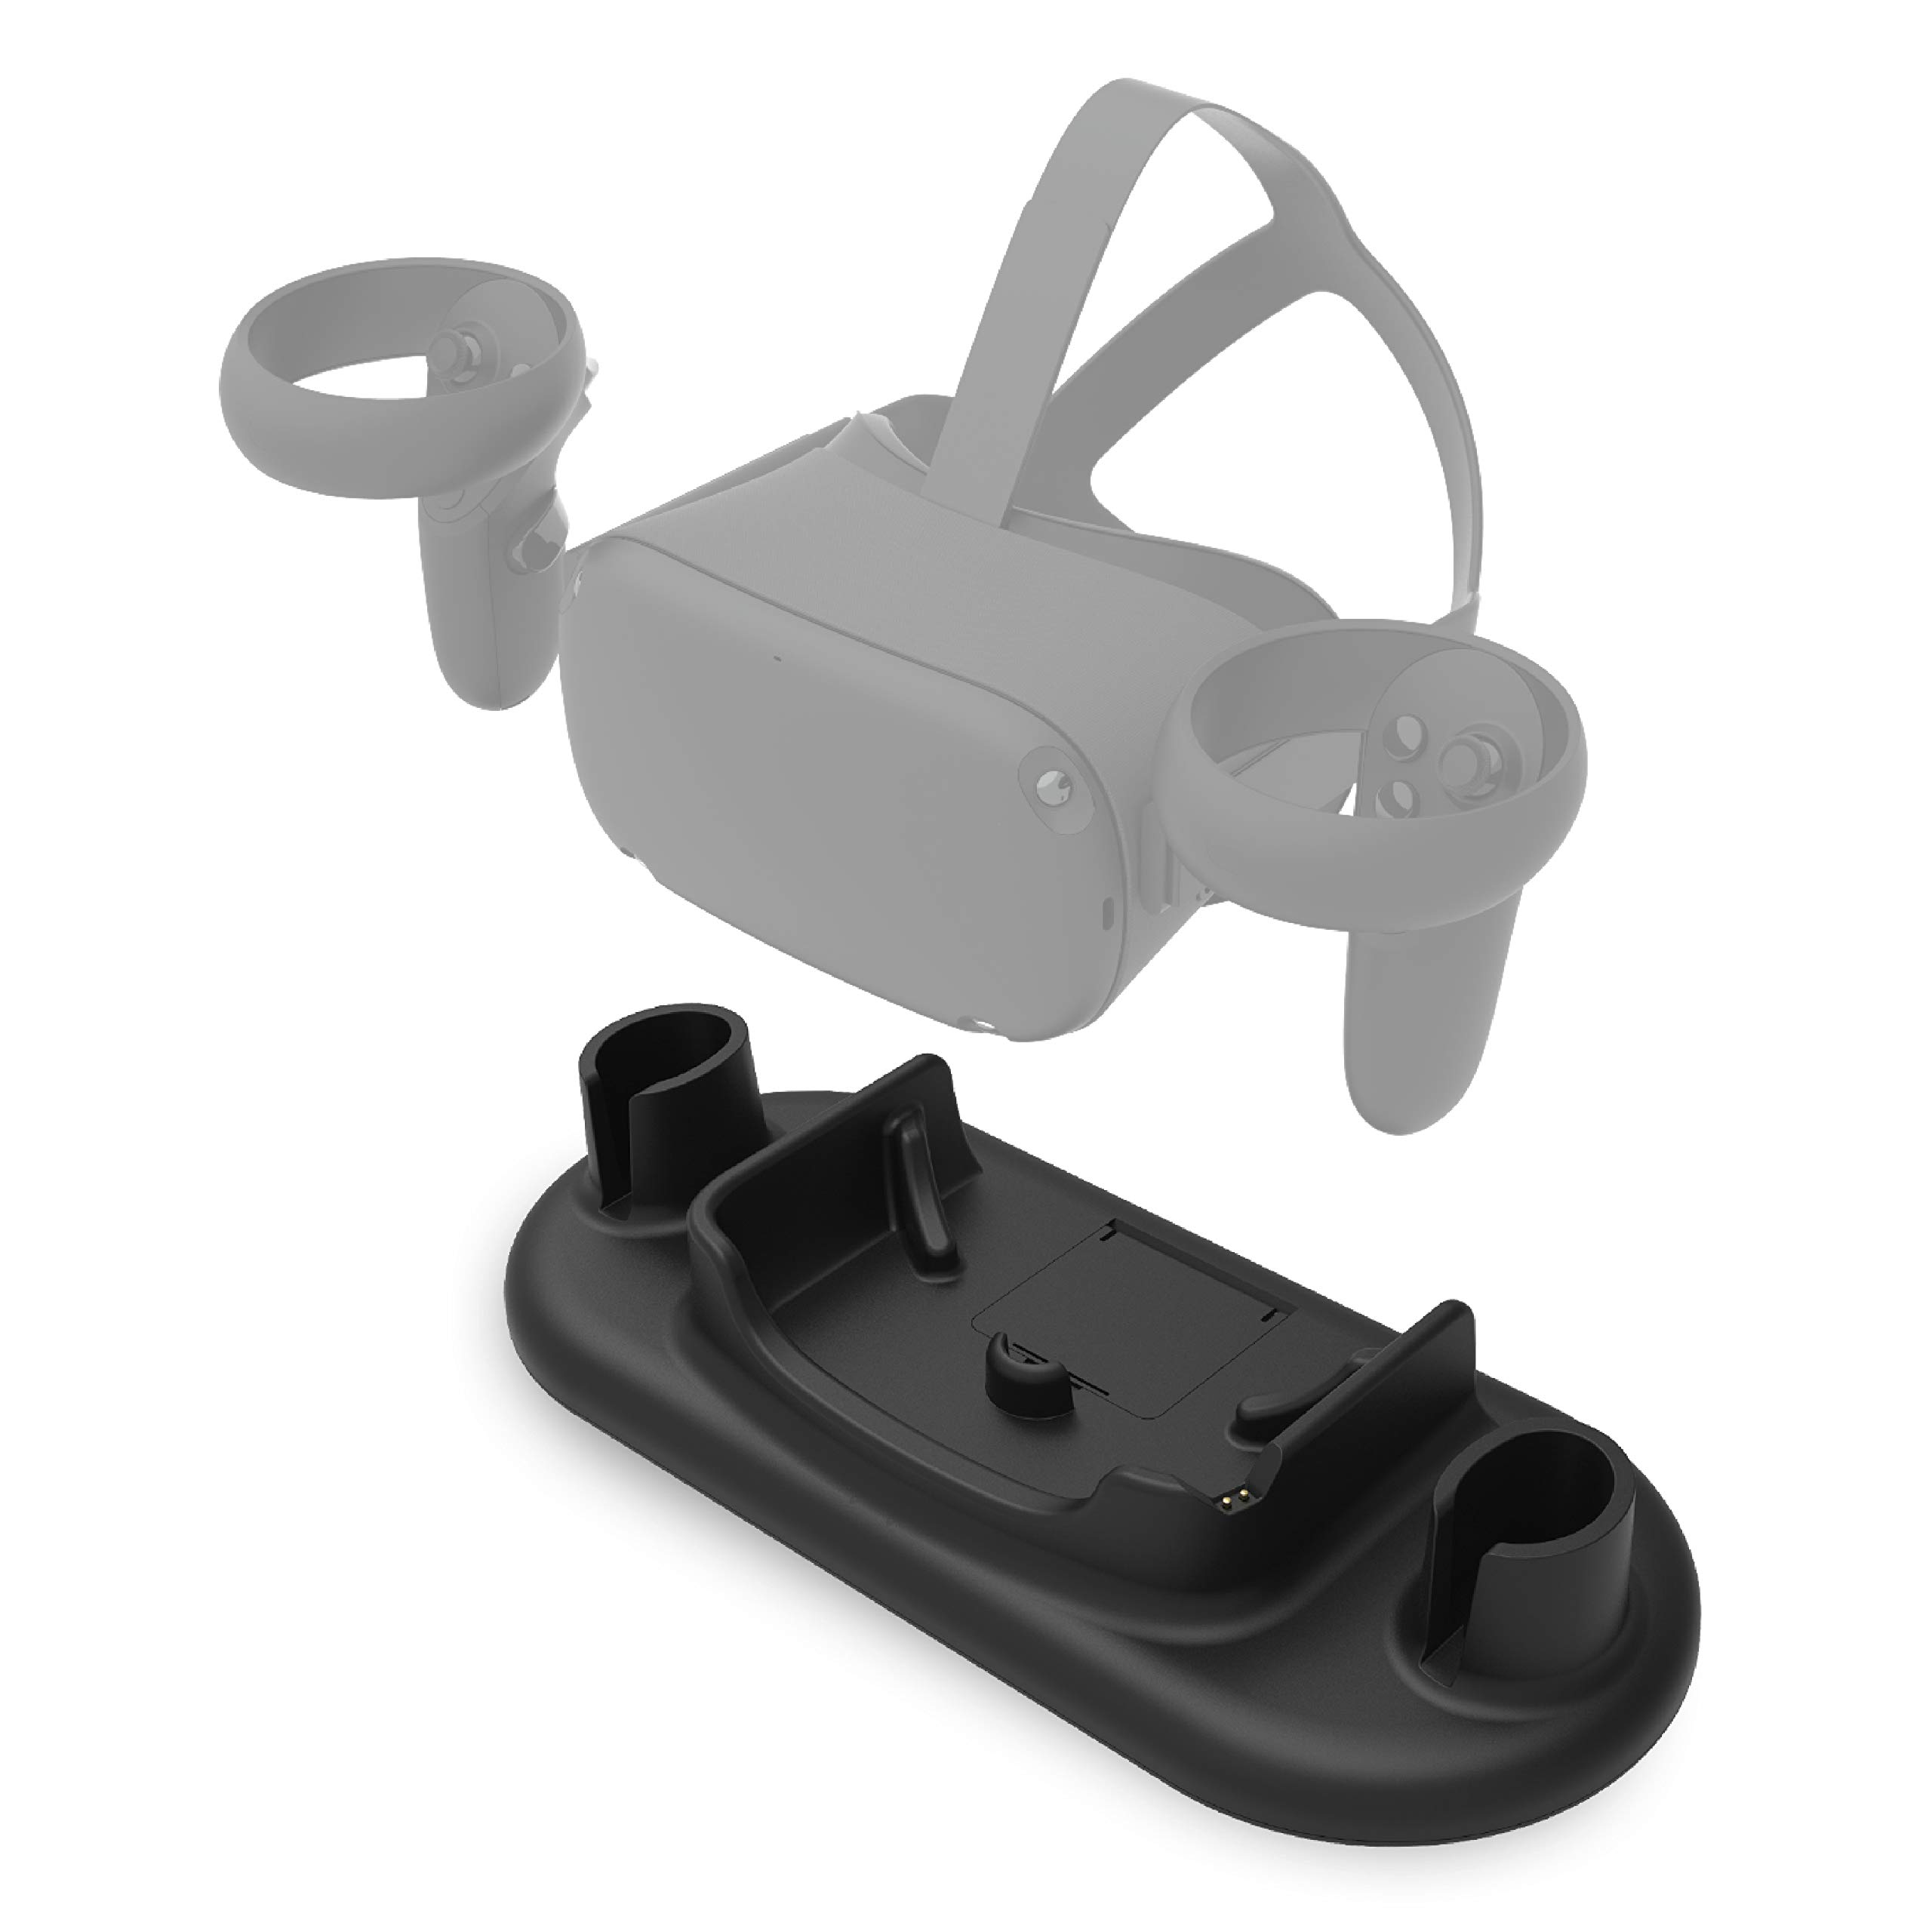 Oculus Quest VR-Charging Dock and Touch Controller Stand by S2dio - Power Stand QVR